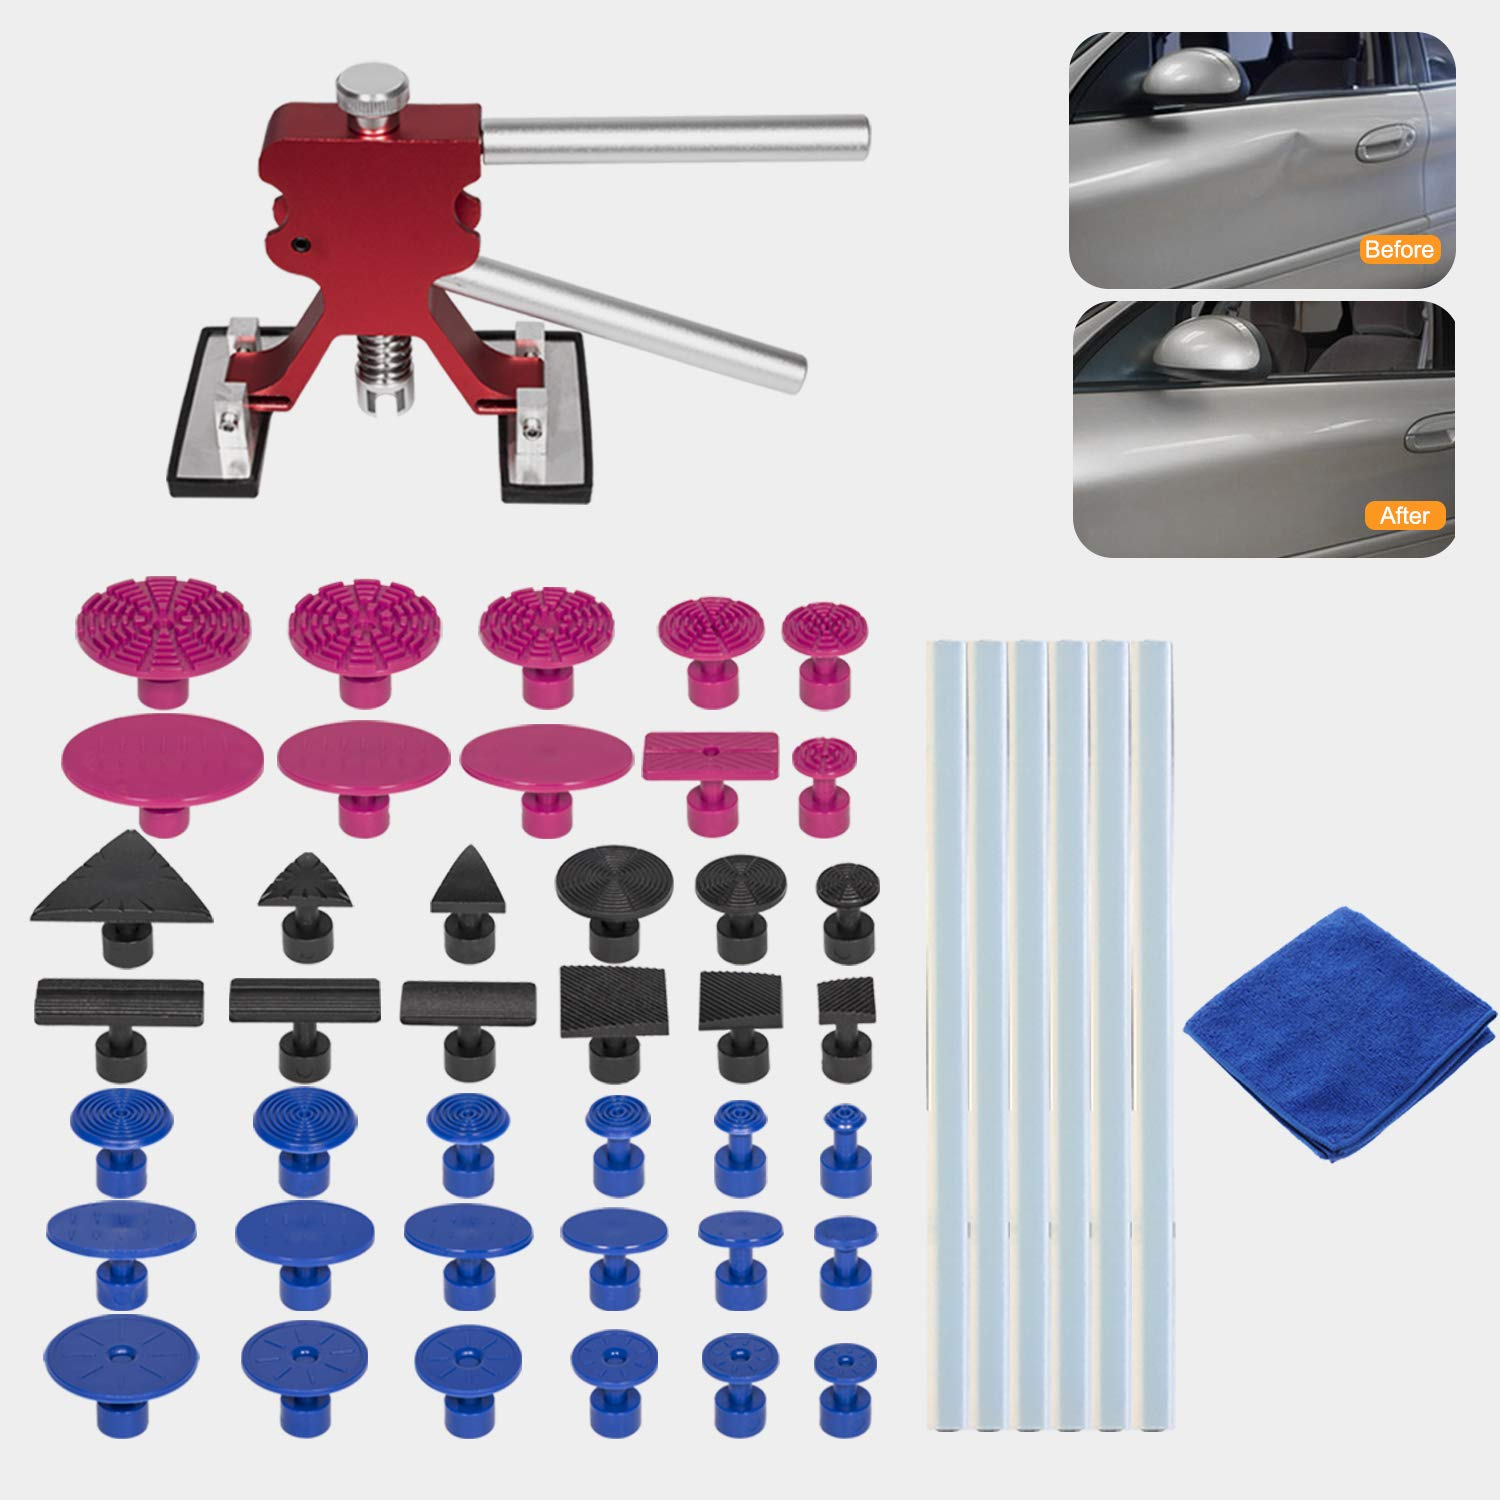 Glue Puller Tabs Car Dent Puller with Double Pole Bridge Dent Puller Minor dents Danti 48pcs Auto Body Repair Tools Door Dings and Hail Damage Glue Shovel for Auto Dent Removal